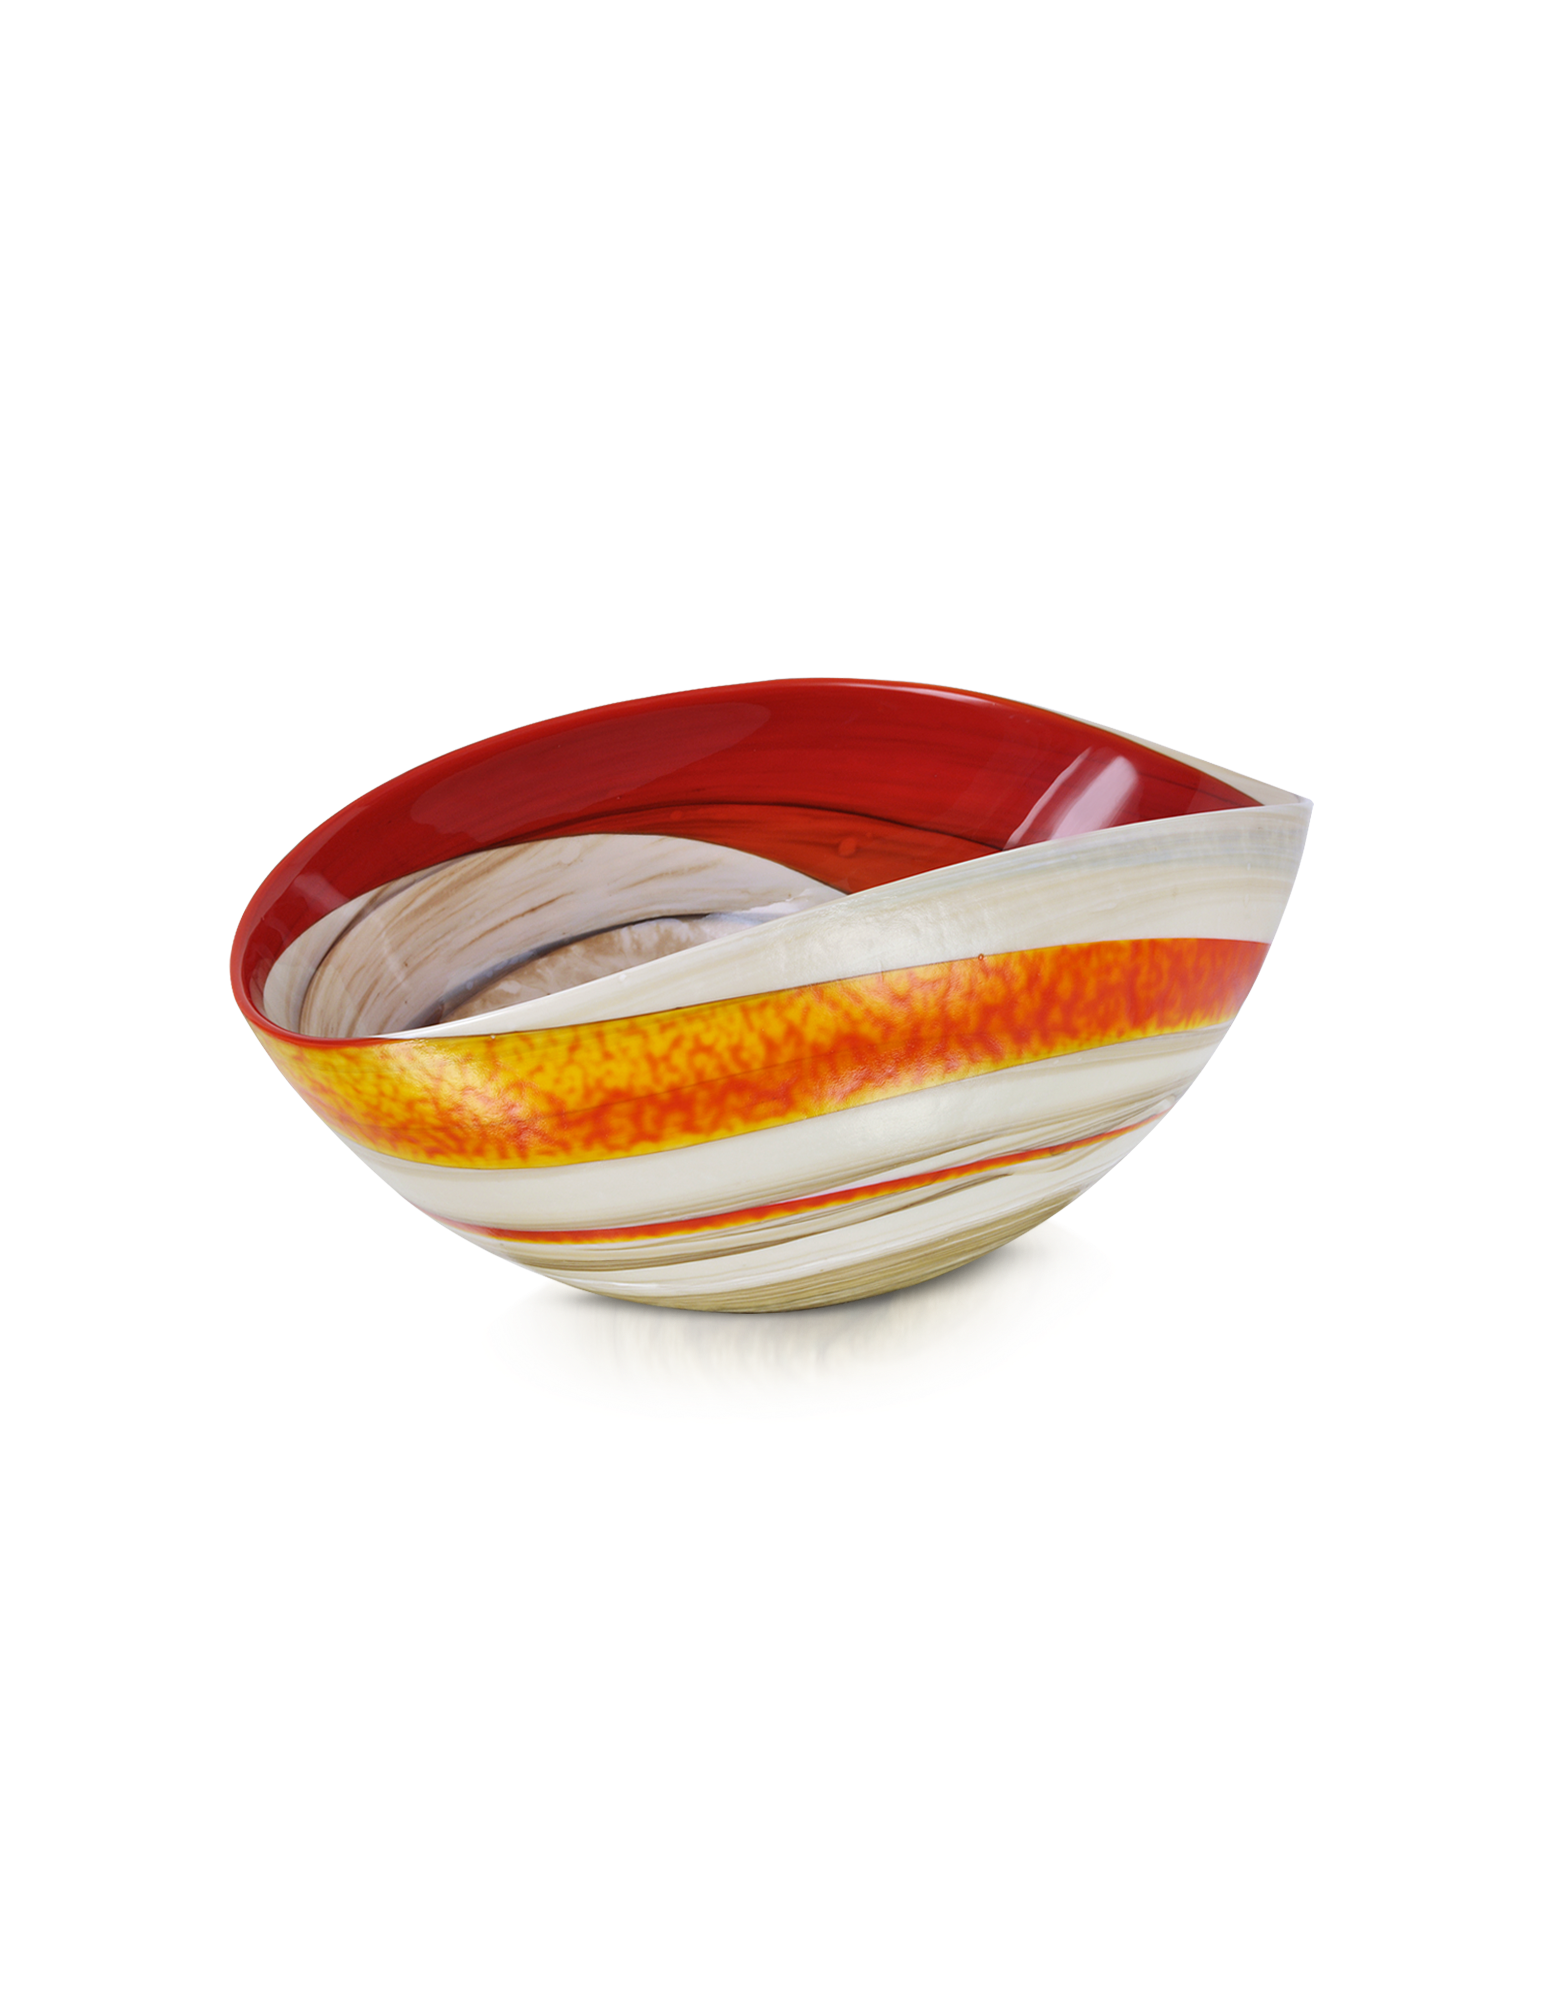 Image of Cartoccio - Small Red and Ivory Marbled Murano Glass Folded Bowl